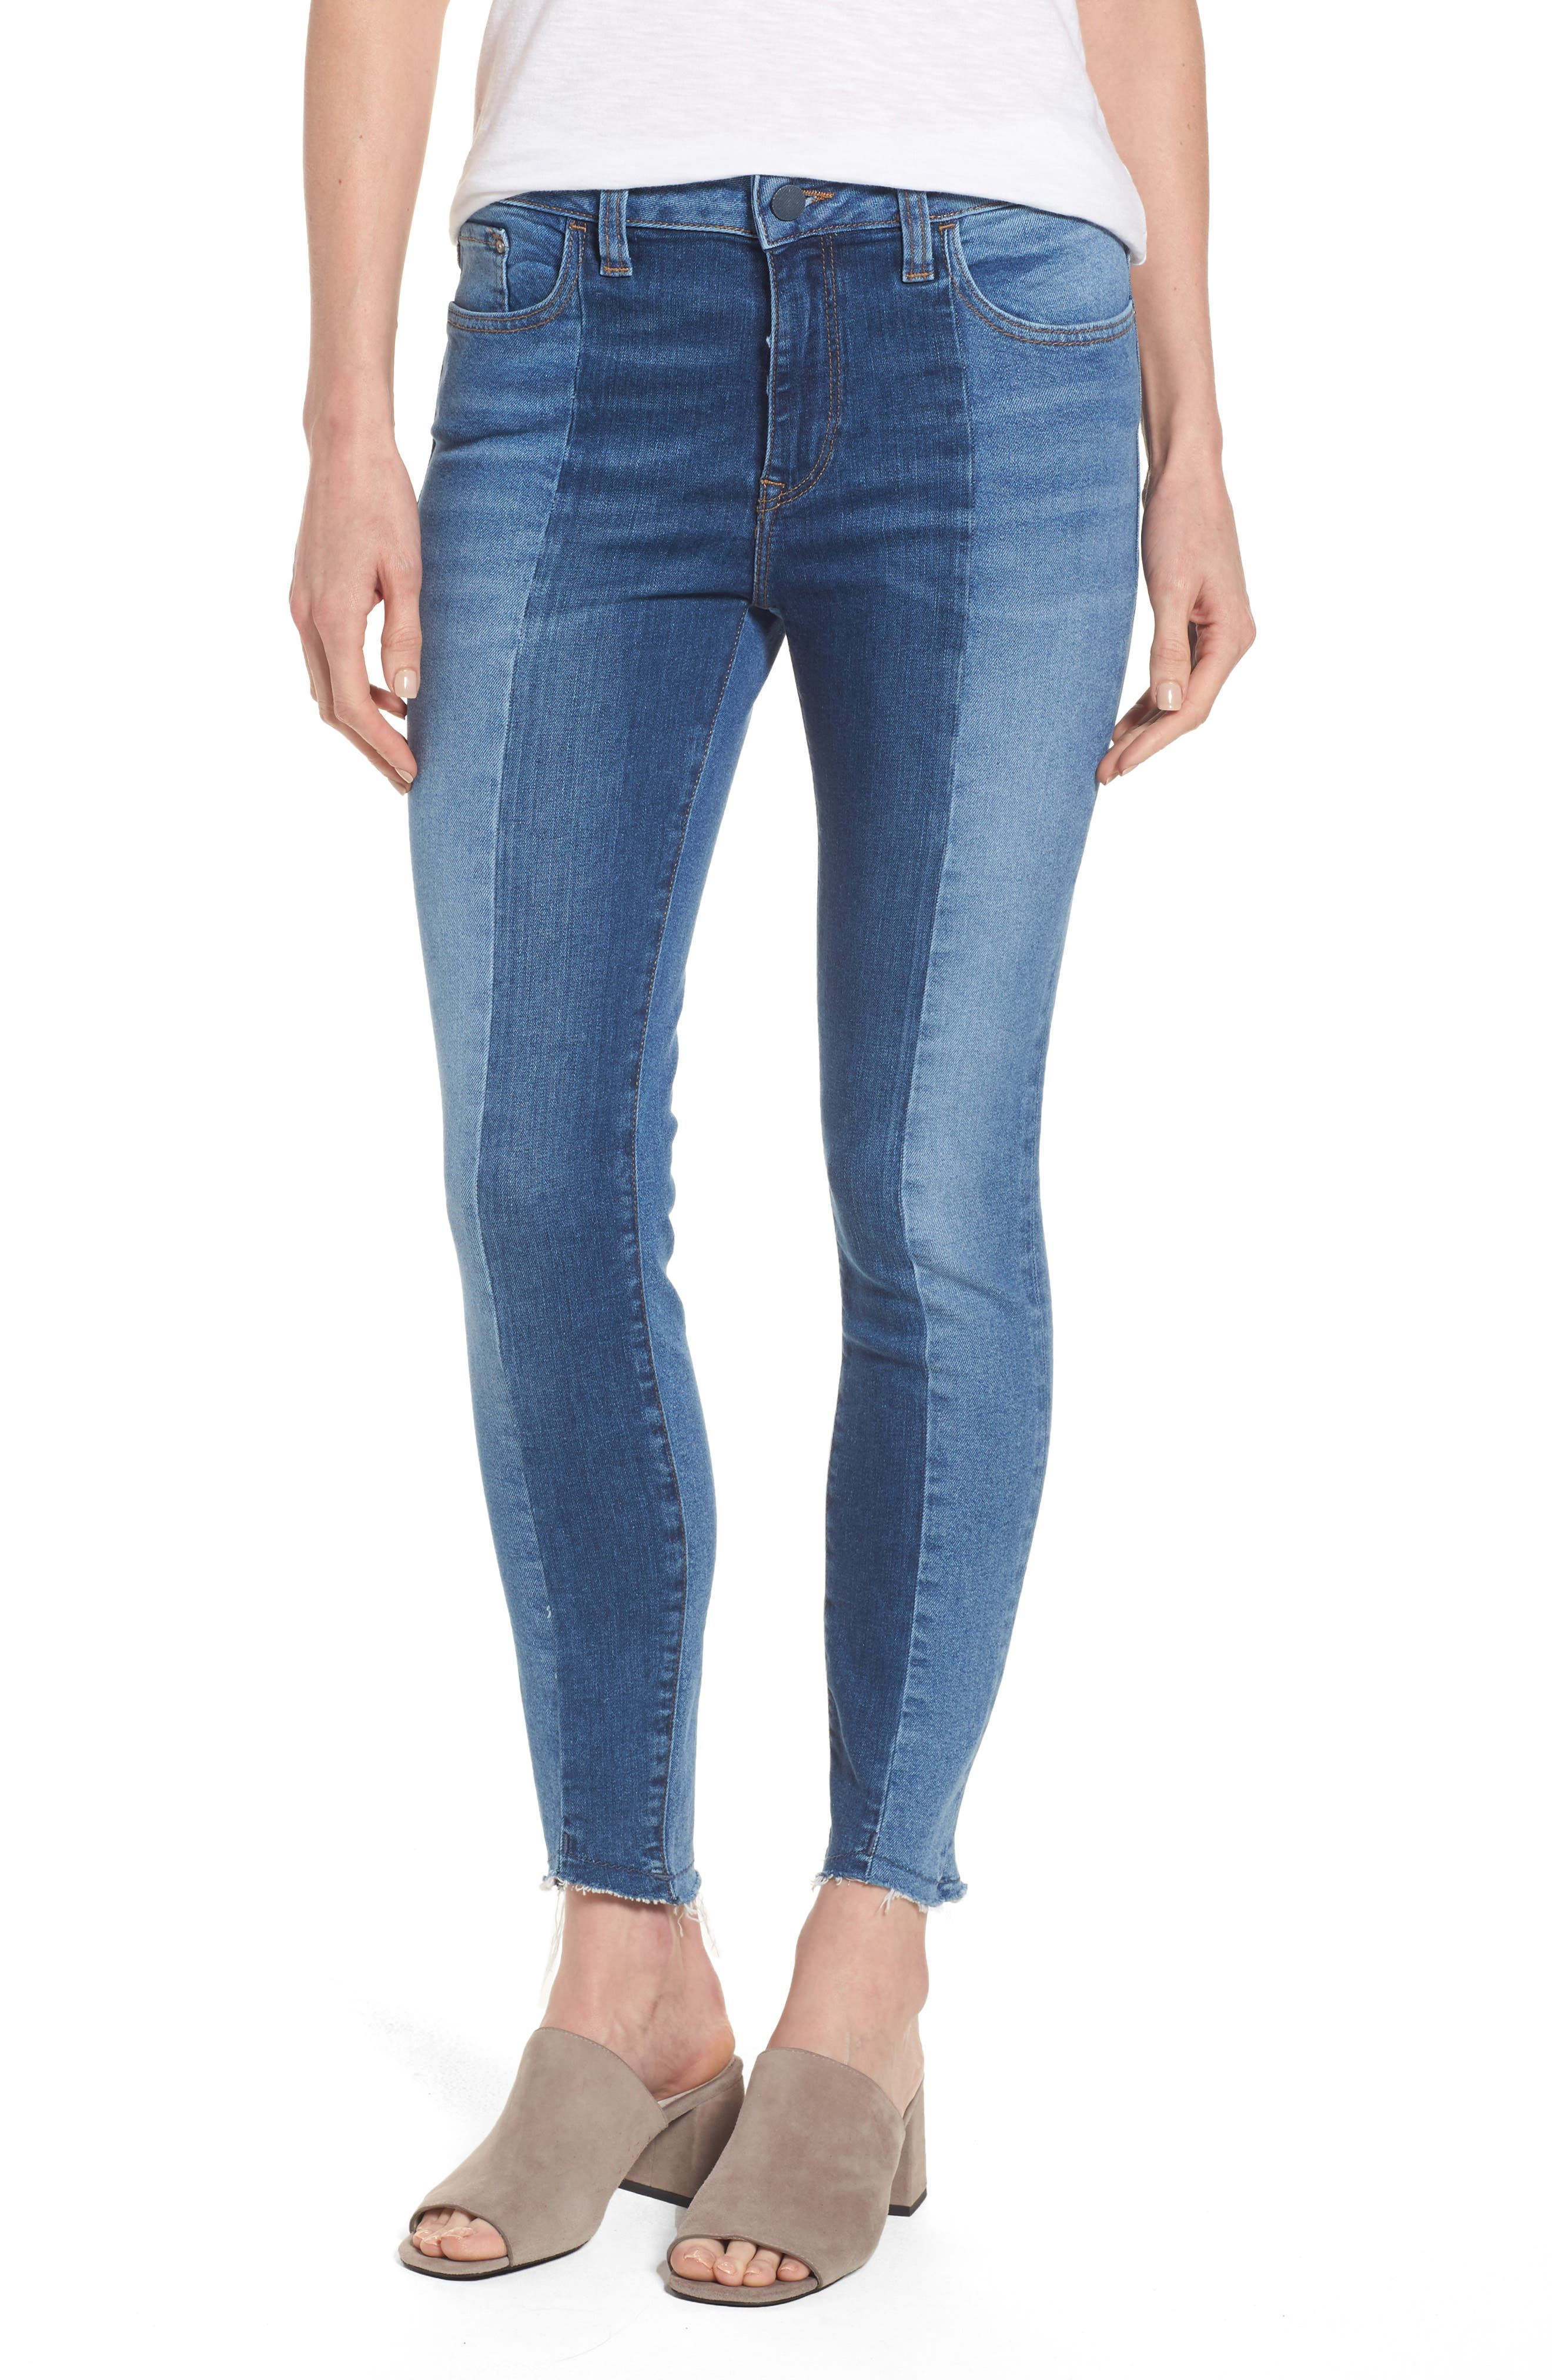 Tess Blocked Super Skinny Jeans,                             Main thumbnail 1, color,                             Mid Shaded Blocking Gold Icon